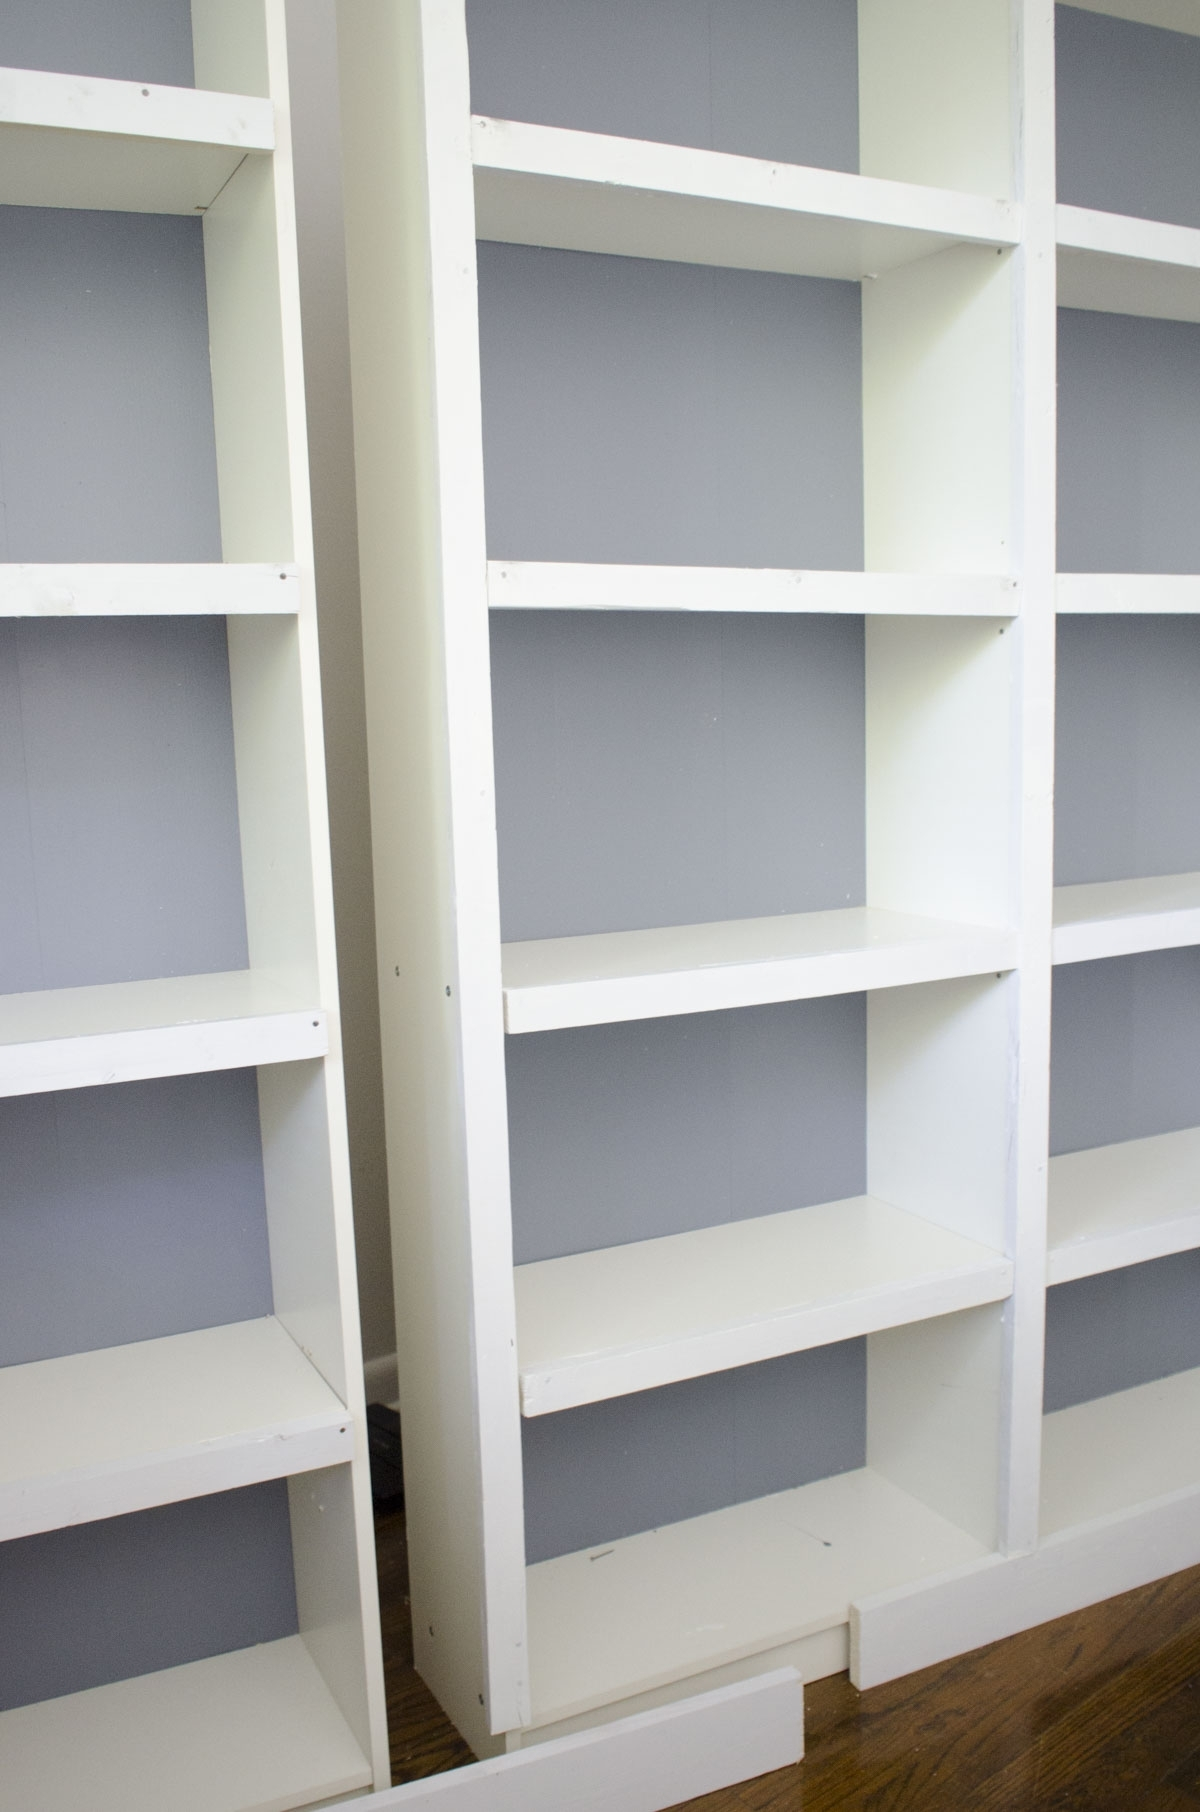 Upgrading My Ikea Bookshelves – Thou Swell Pertaining To 2018 Diy Bookcases (View 15 of 15)